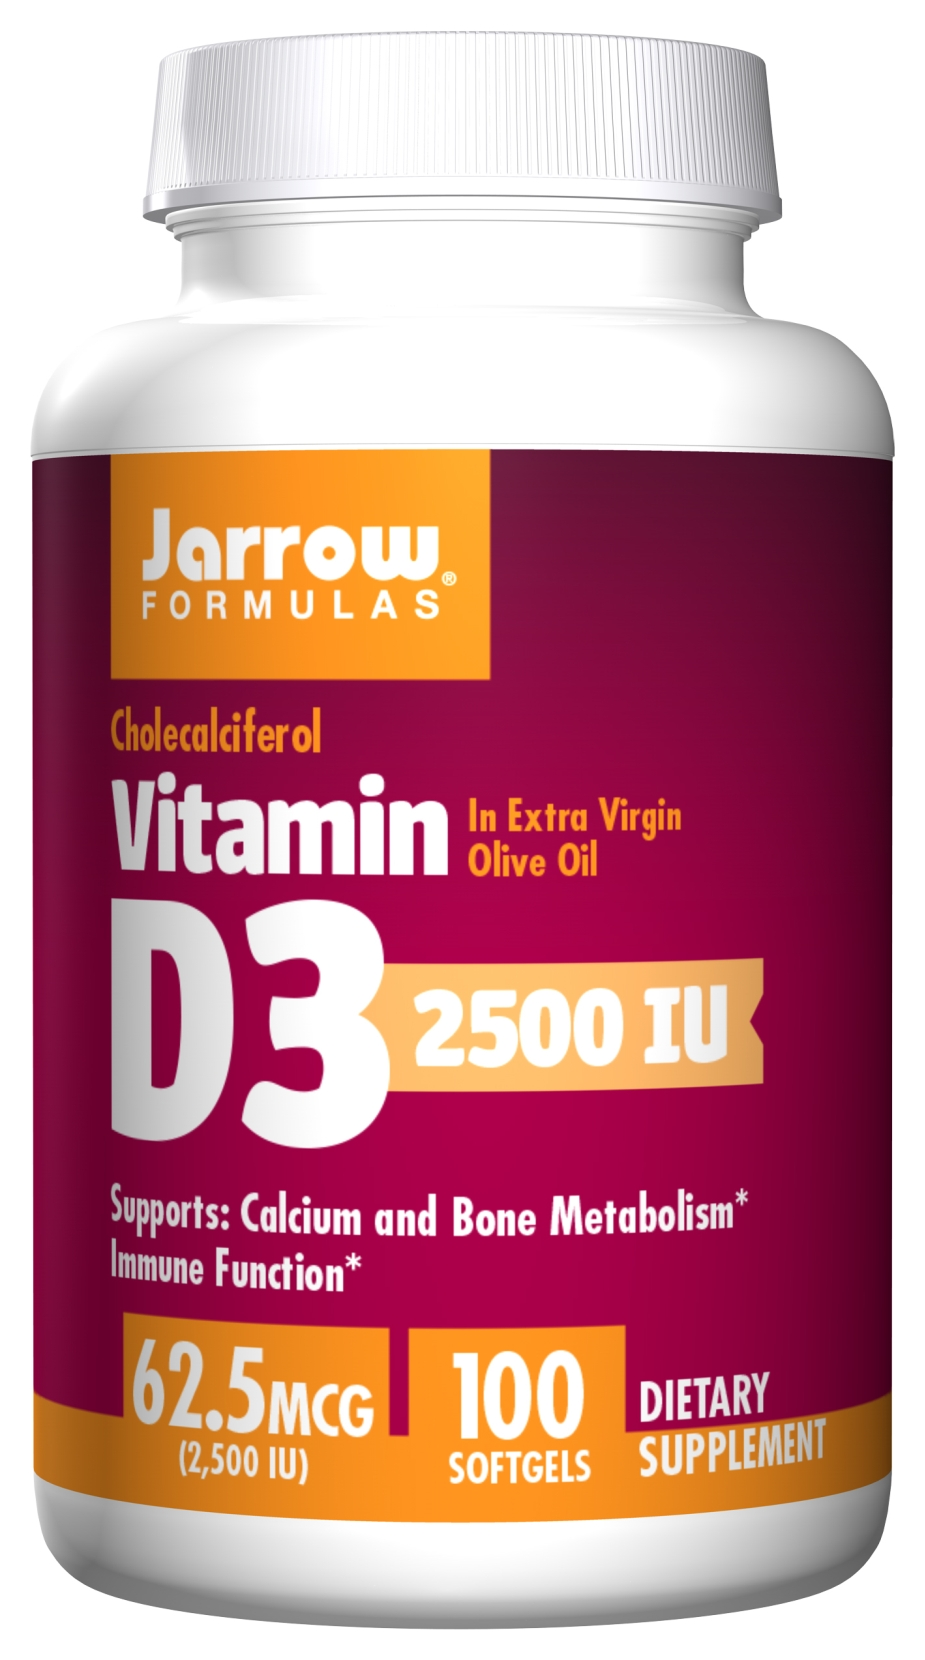 Vitamin D3 2500 IU 100 sgels by Jarrow Formulas